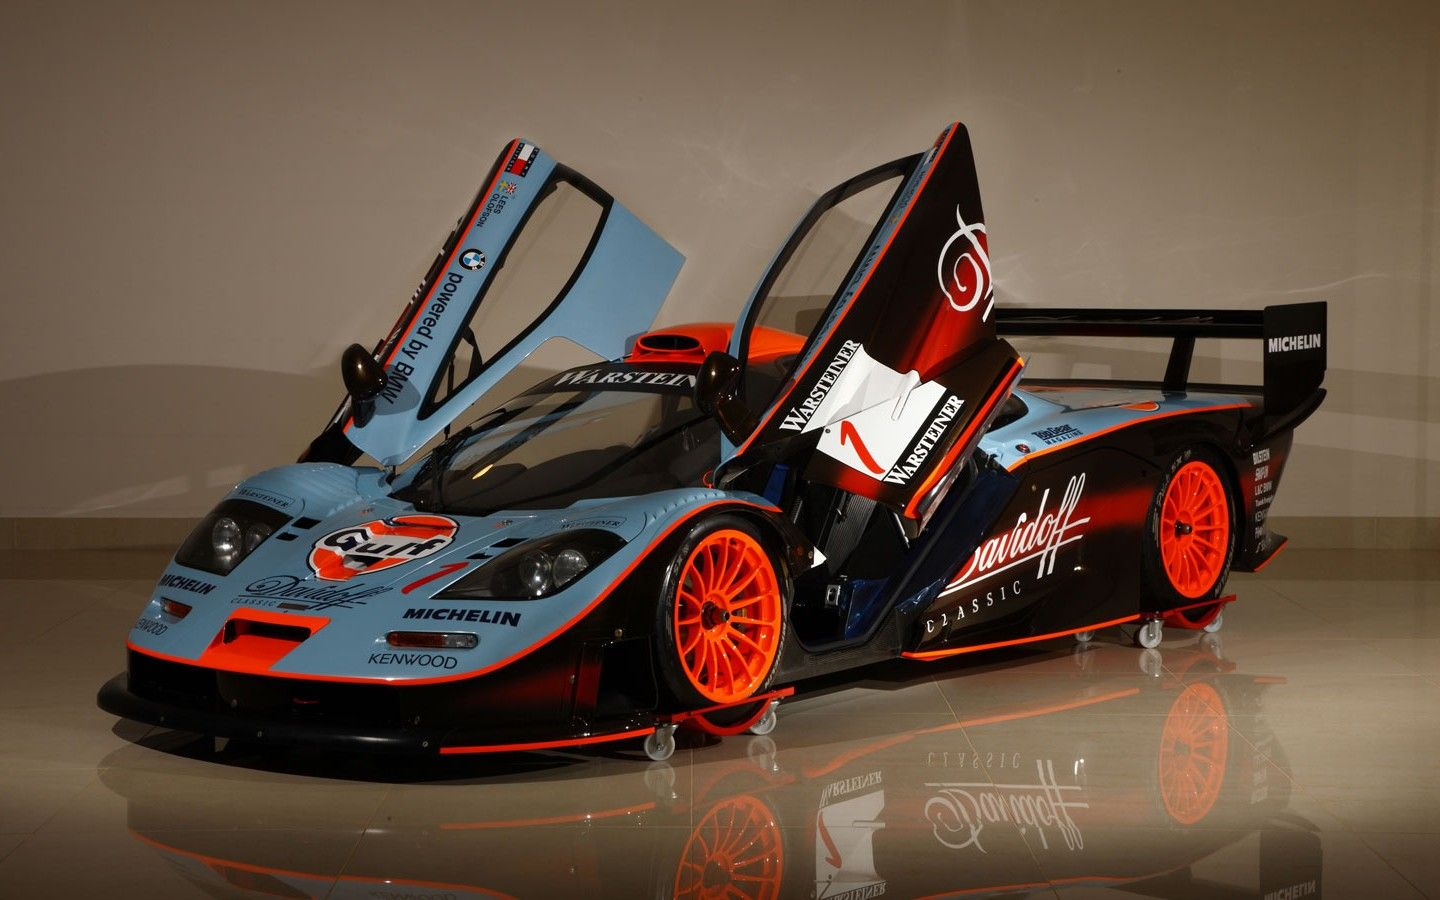 Le Mans McLaren F1 racing F1 GTR coupe Warsteiner | Gorgeous F1 Cars ...